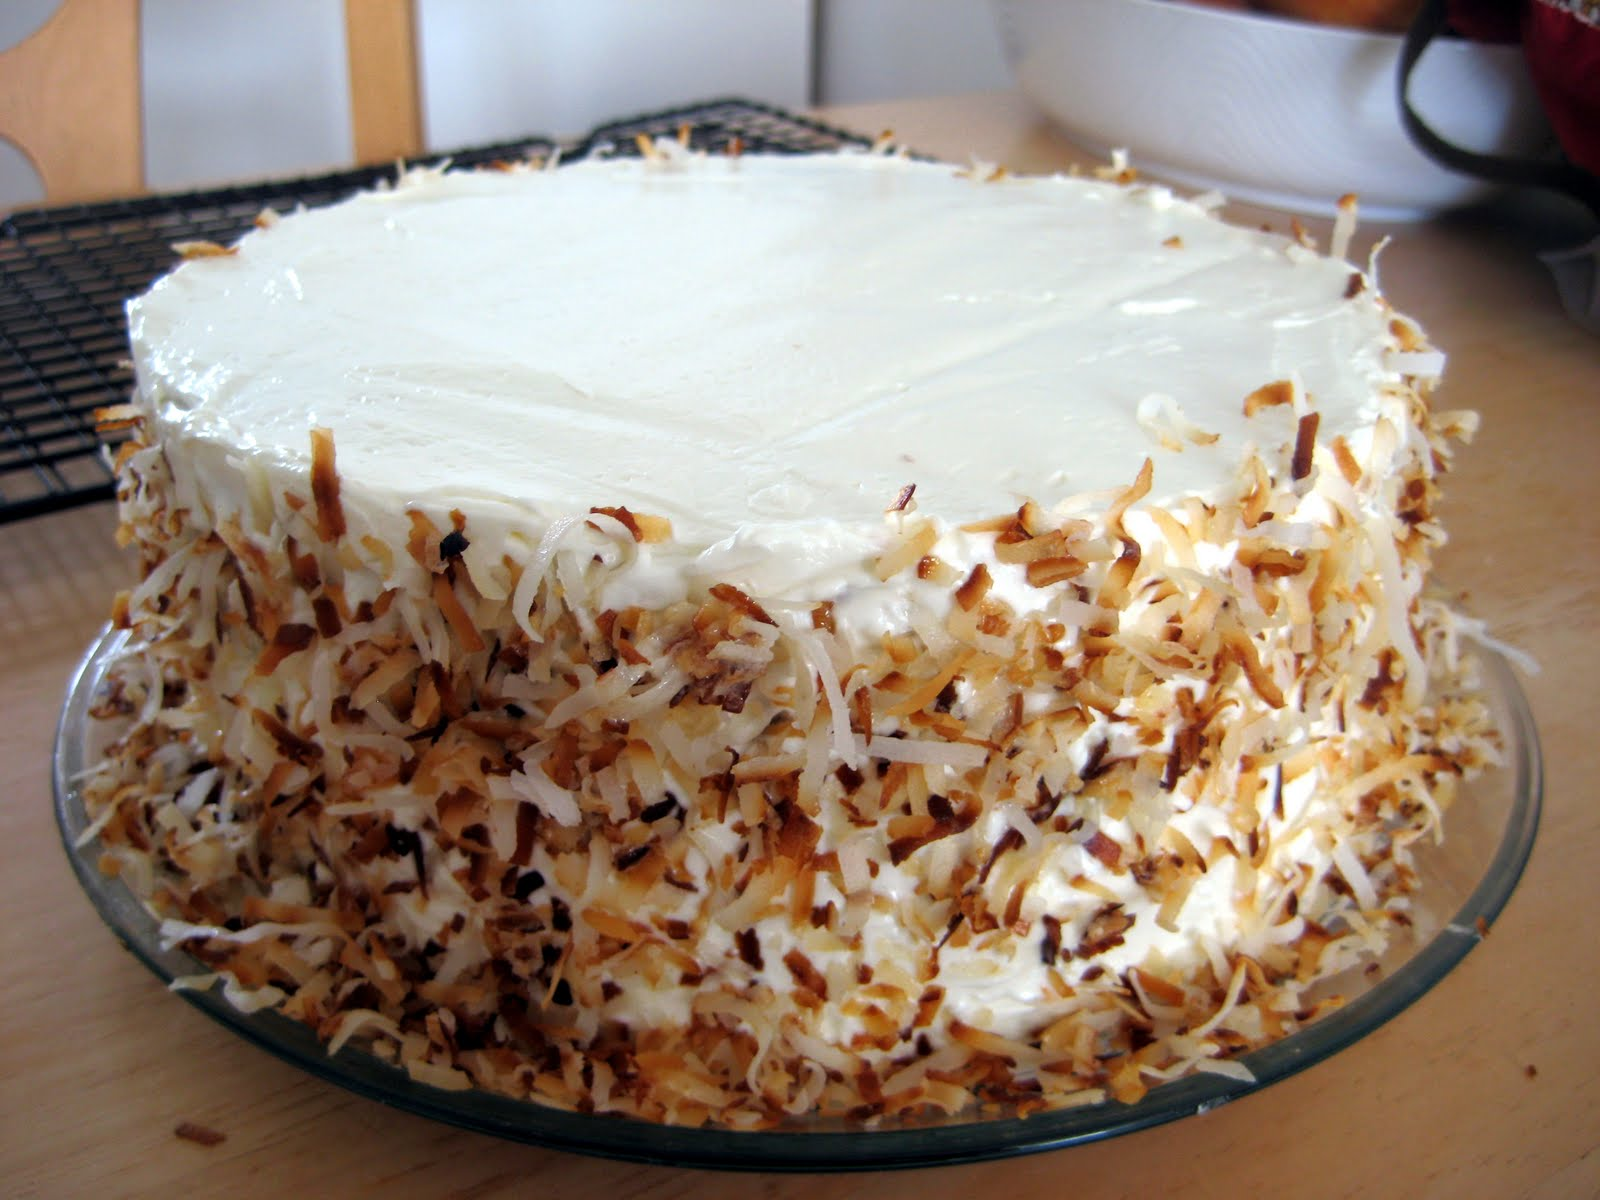 My Food Affair: Pina Colada Cake